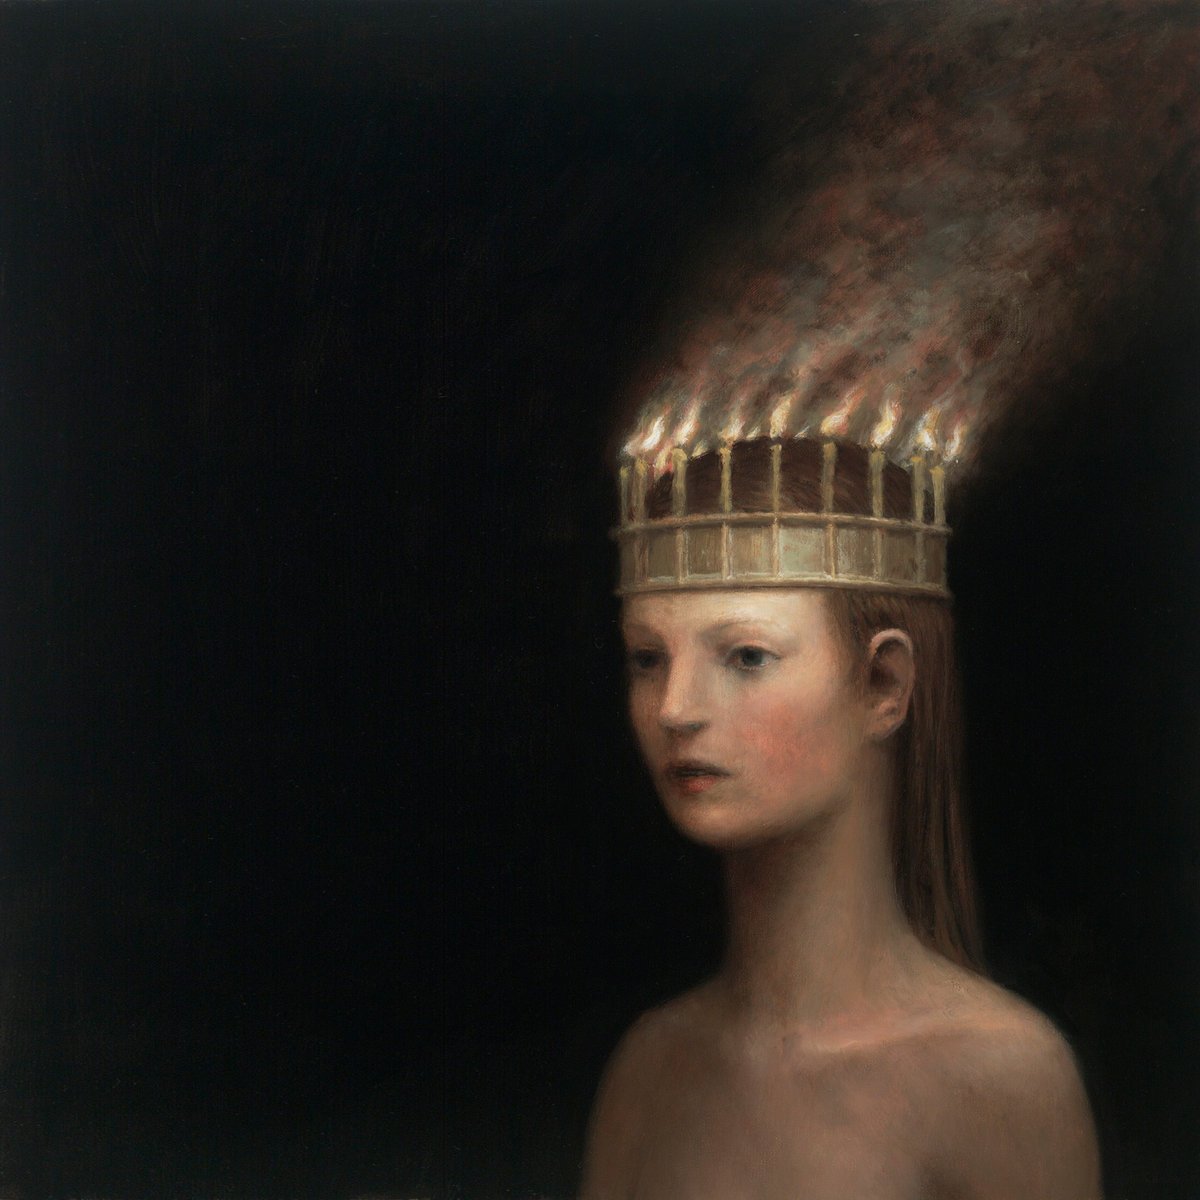 Mantar - Death by Burning (2014)